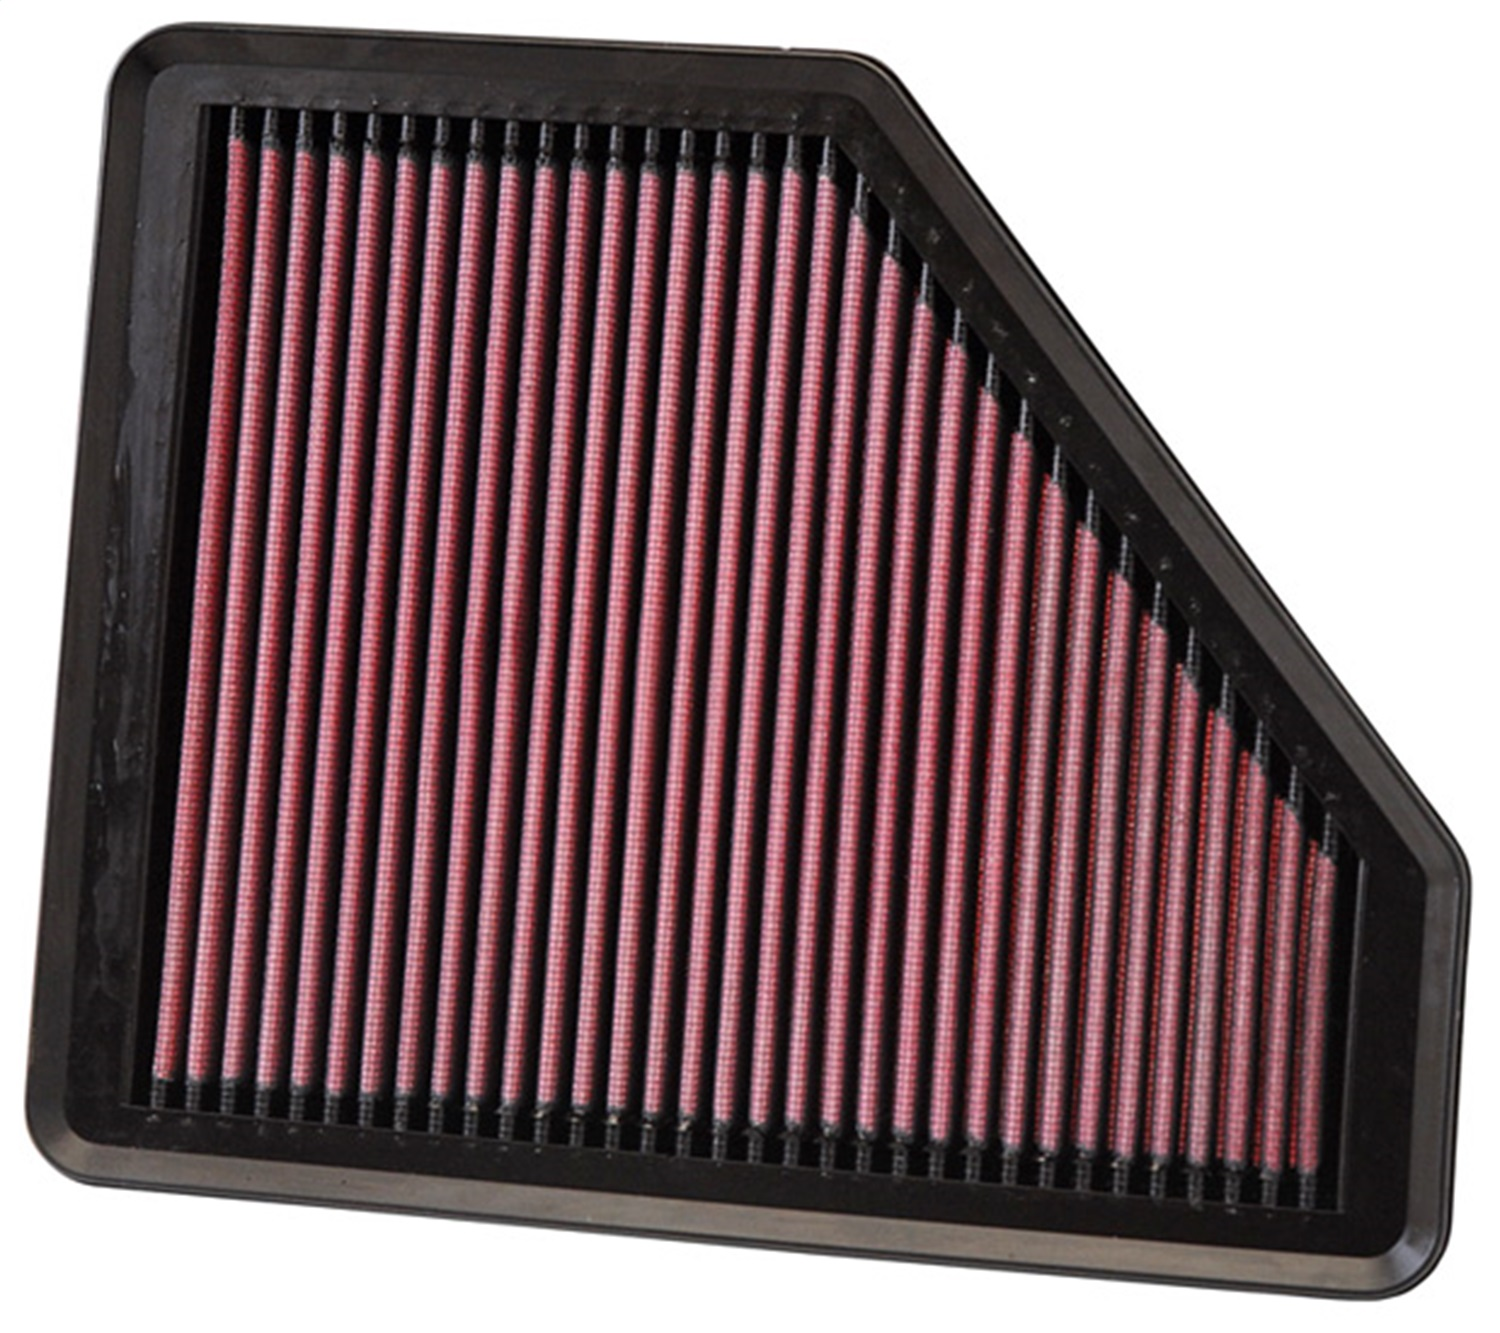 K&N Filters 33-2958 Air Filter Fits 10-12 Genesis Coupe 33-2958